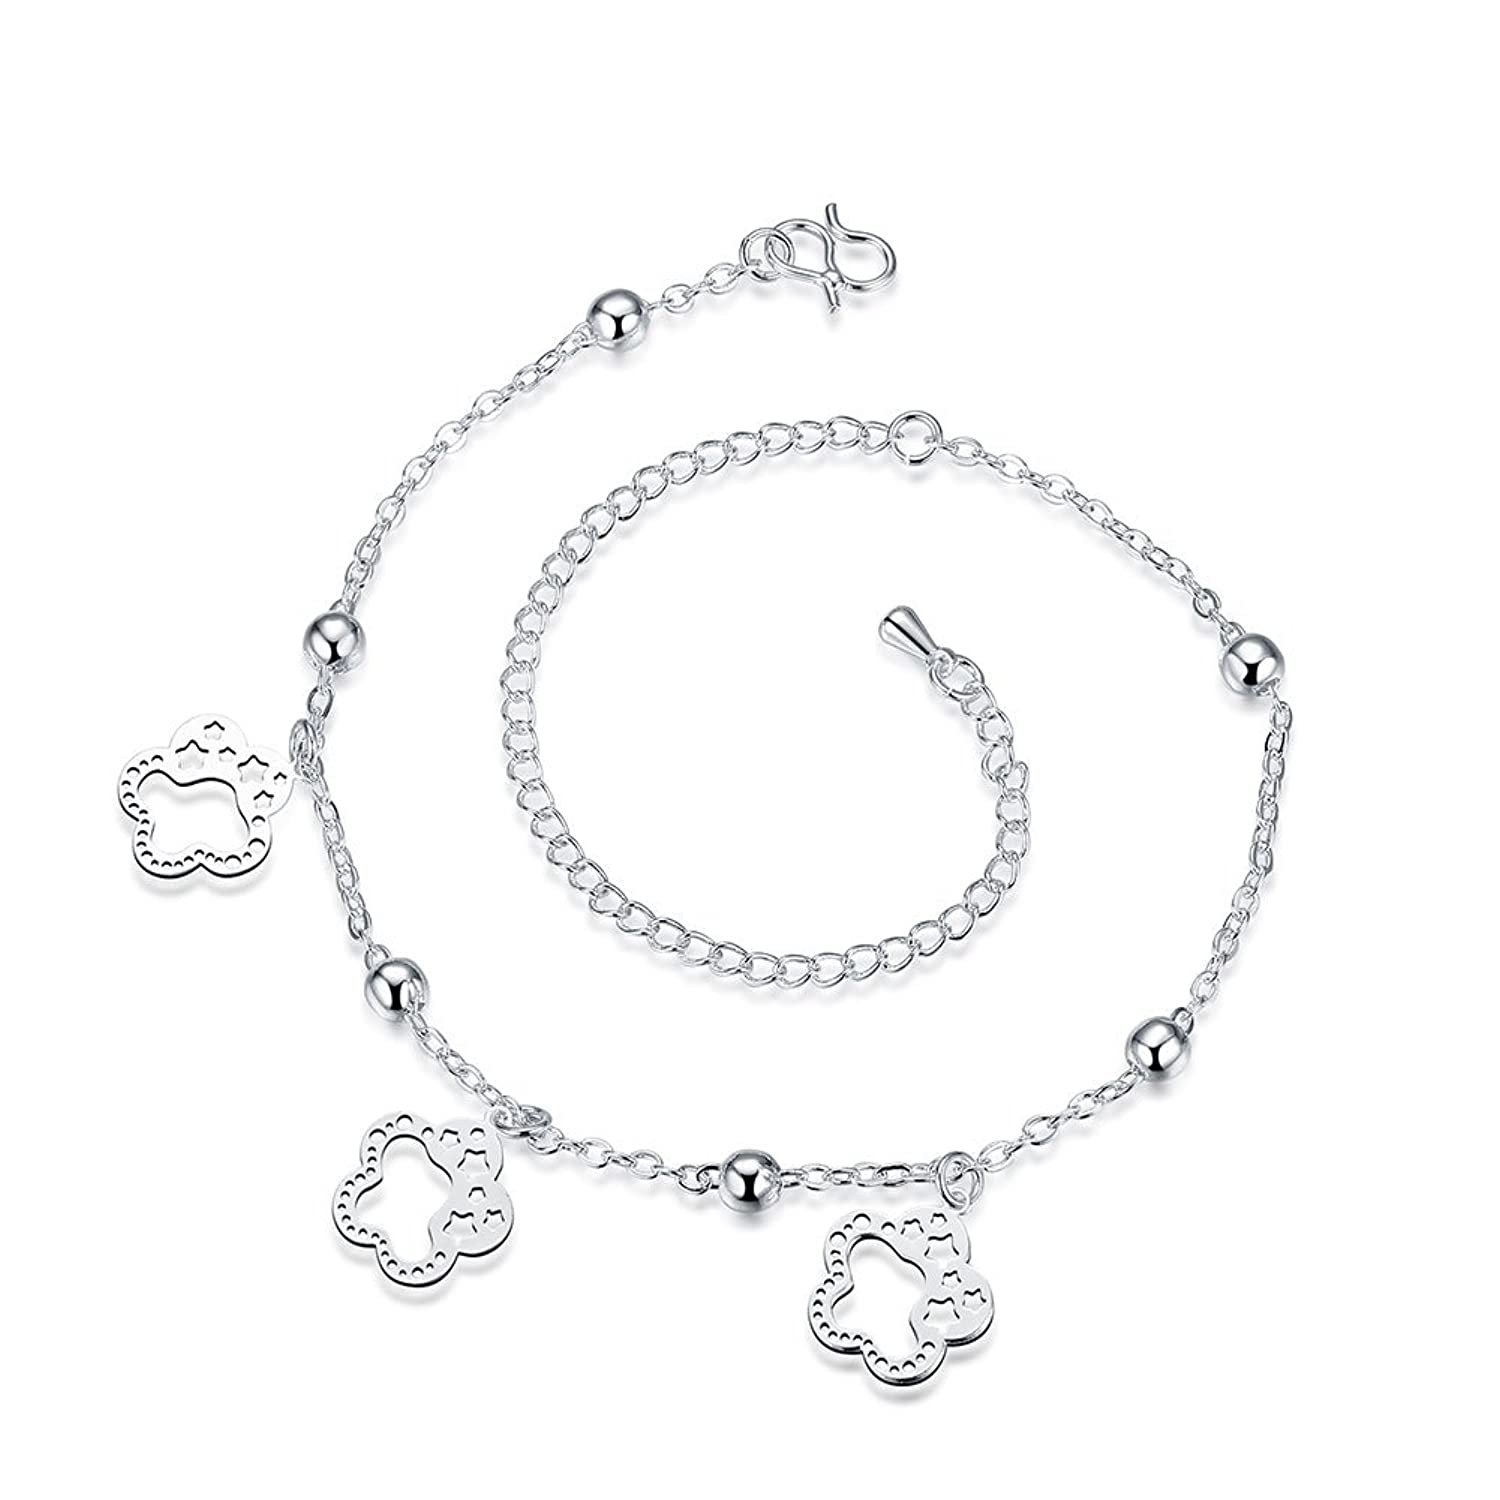 Women Flowers Beads Out Double Layers Ankle Bracelet Platinum Plated Jewelry Sandal Beach Foot Chain